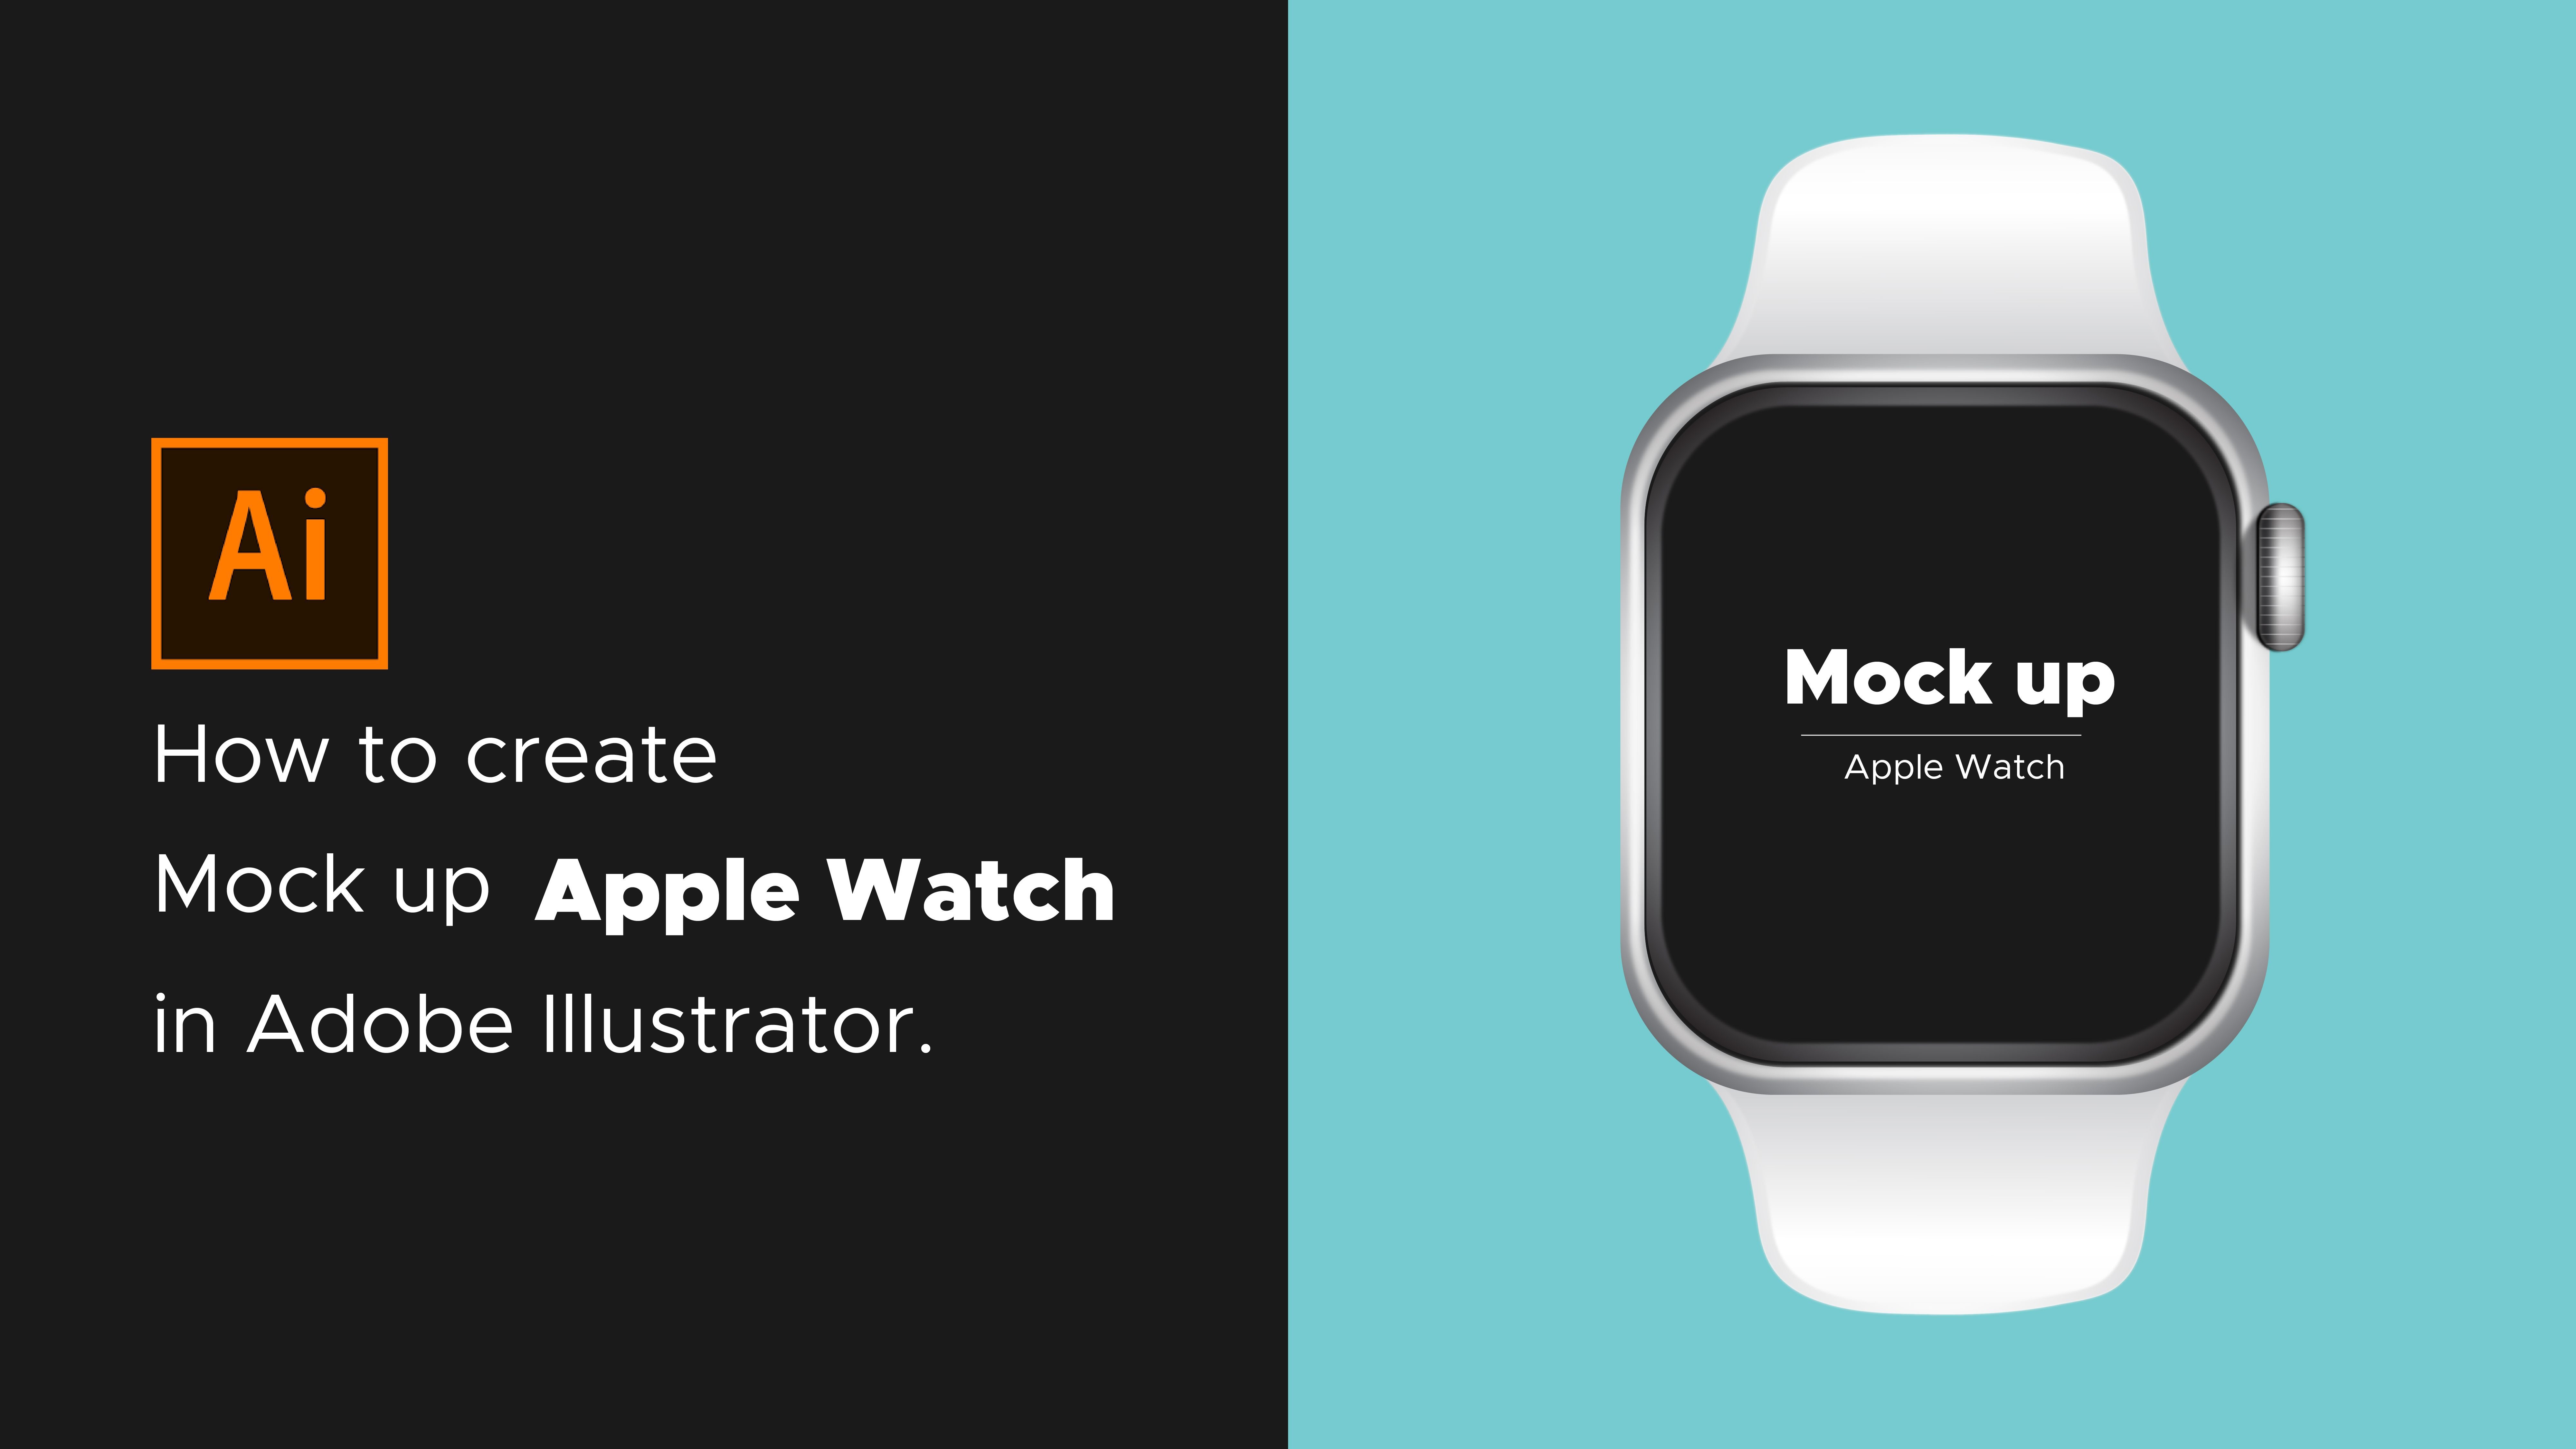 How to create a mock up apple watch in adobe Illustrator